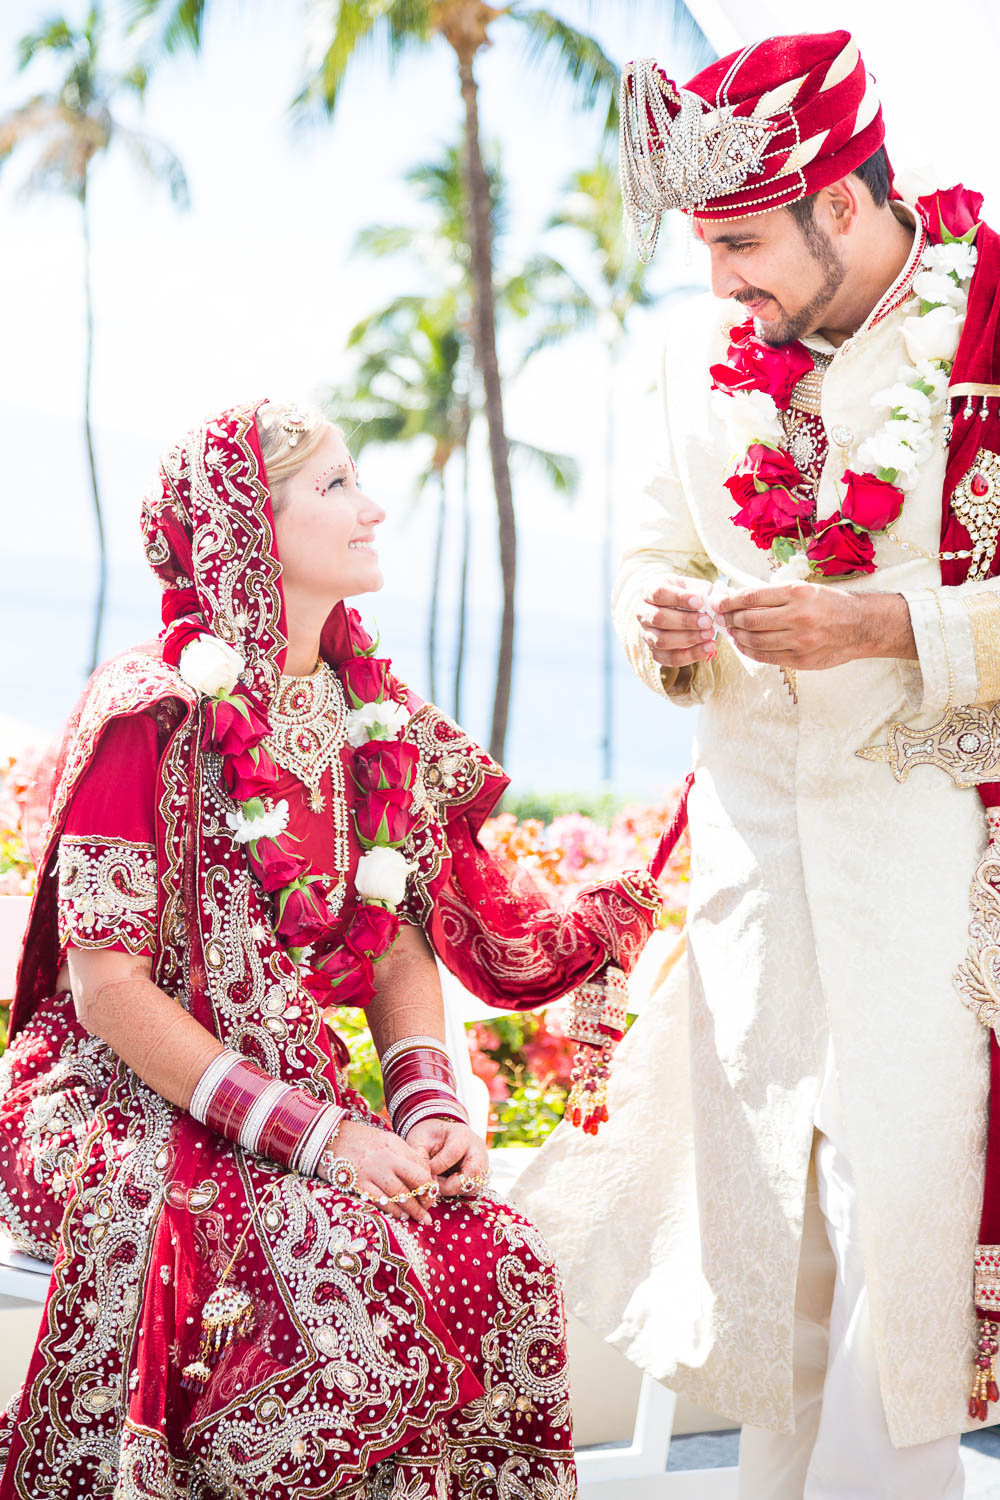 Chelsea-Heller-Photography-Maui-Wedding-Photography-94